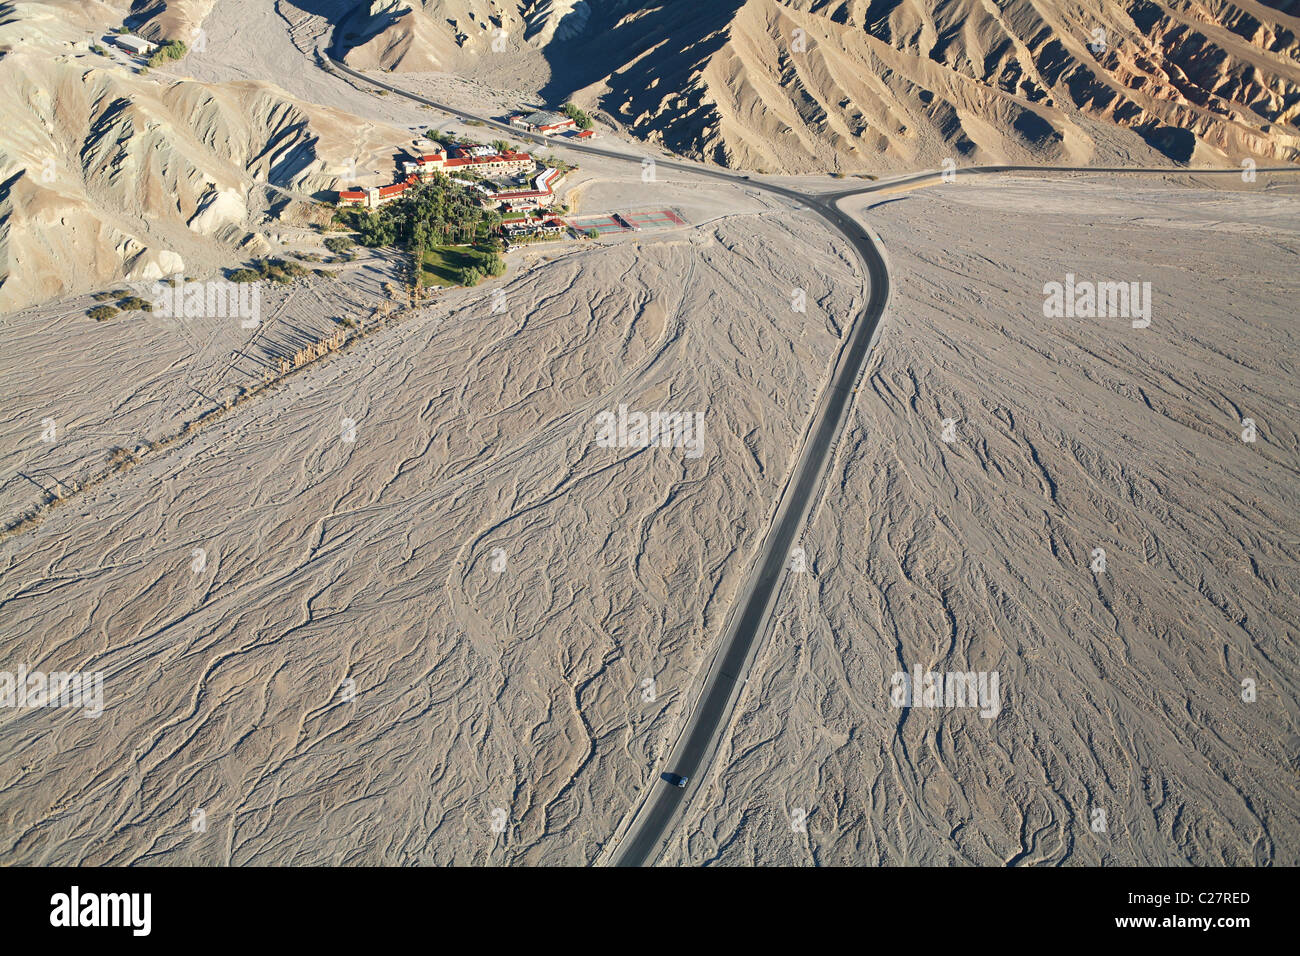 FURNACE CREEK INN (aerial view)  Hotel between a canyon outlet and